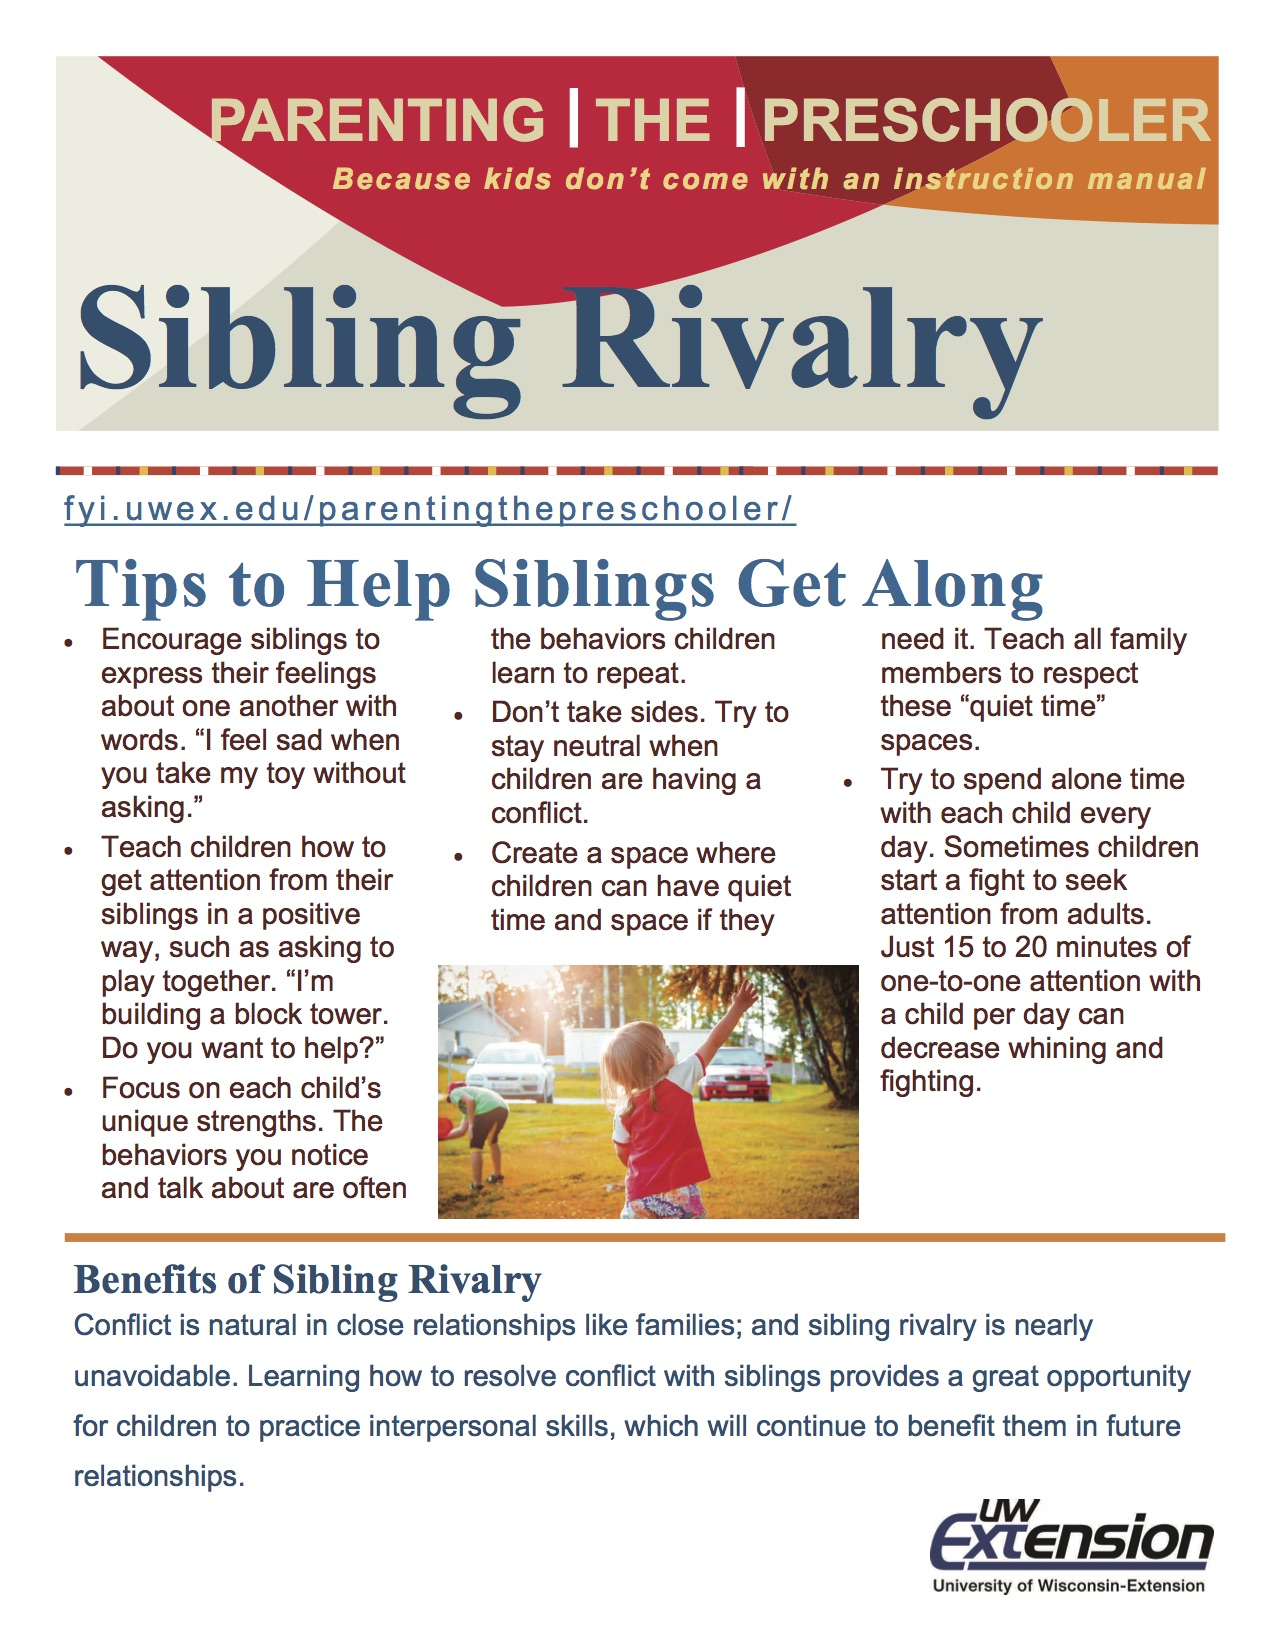 PtP Sibling Rivalry1